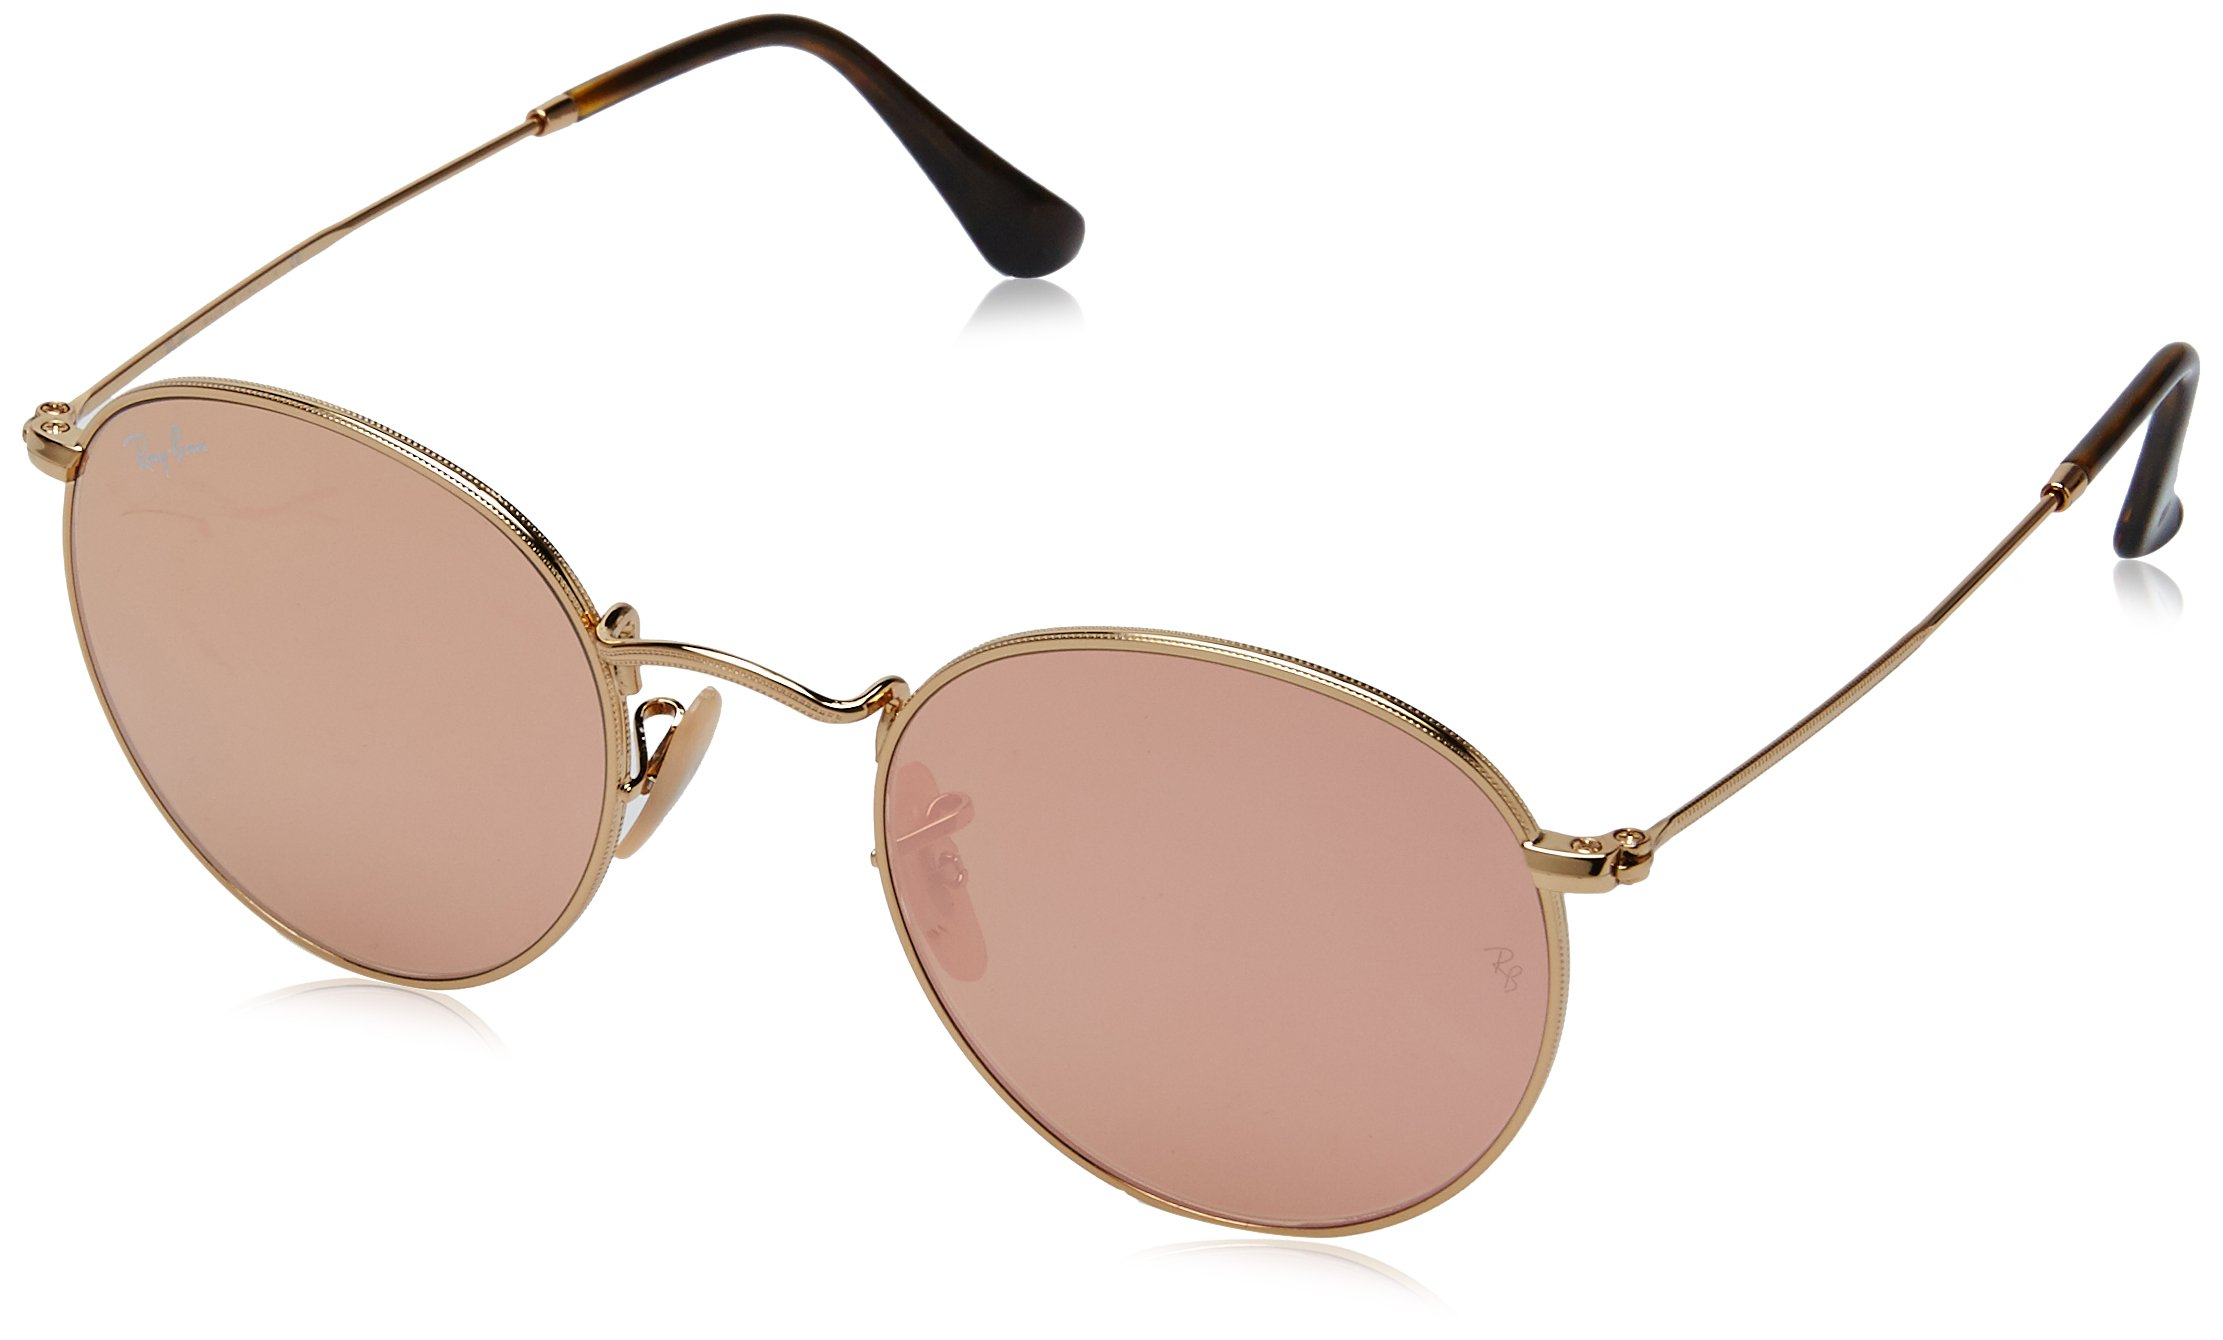 Ray-Ban RB3447N 001/Z2 Non polarized Round Sunglasses, Gold/Copper Flash, 50mm